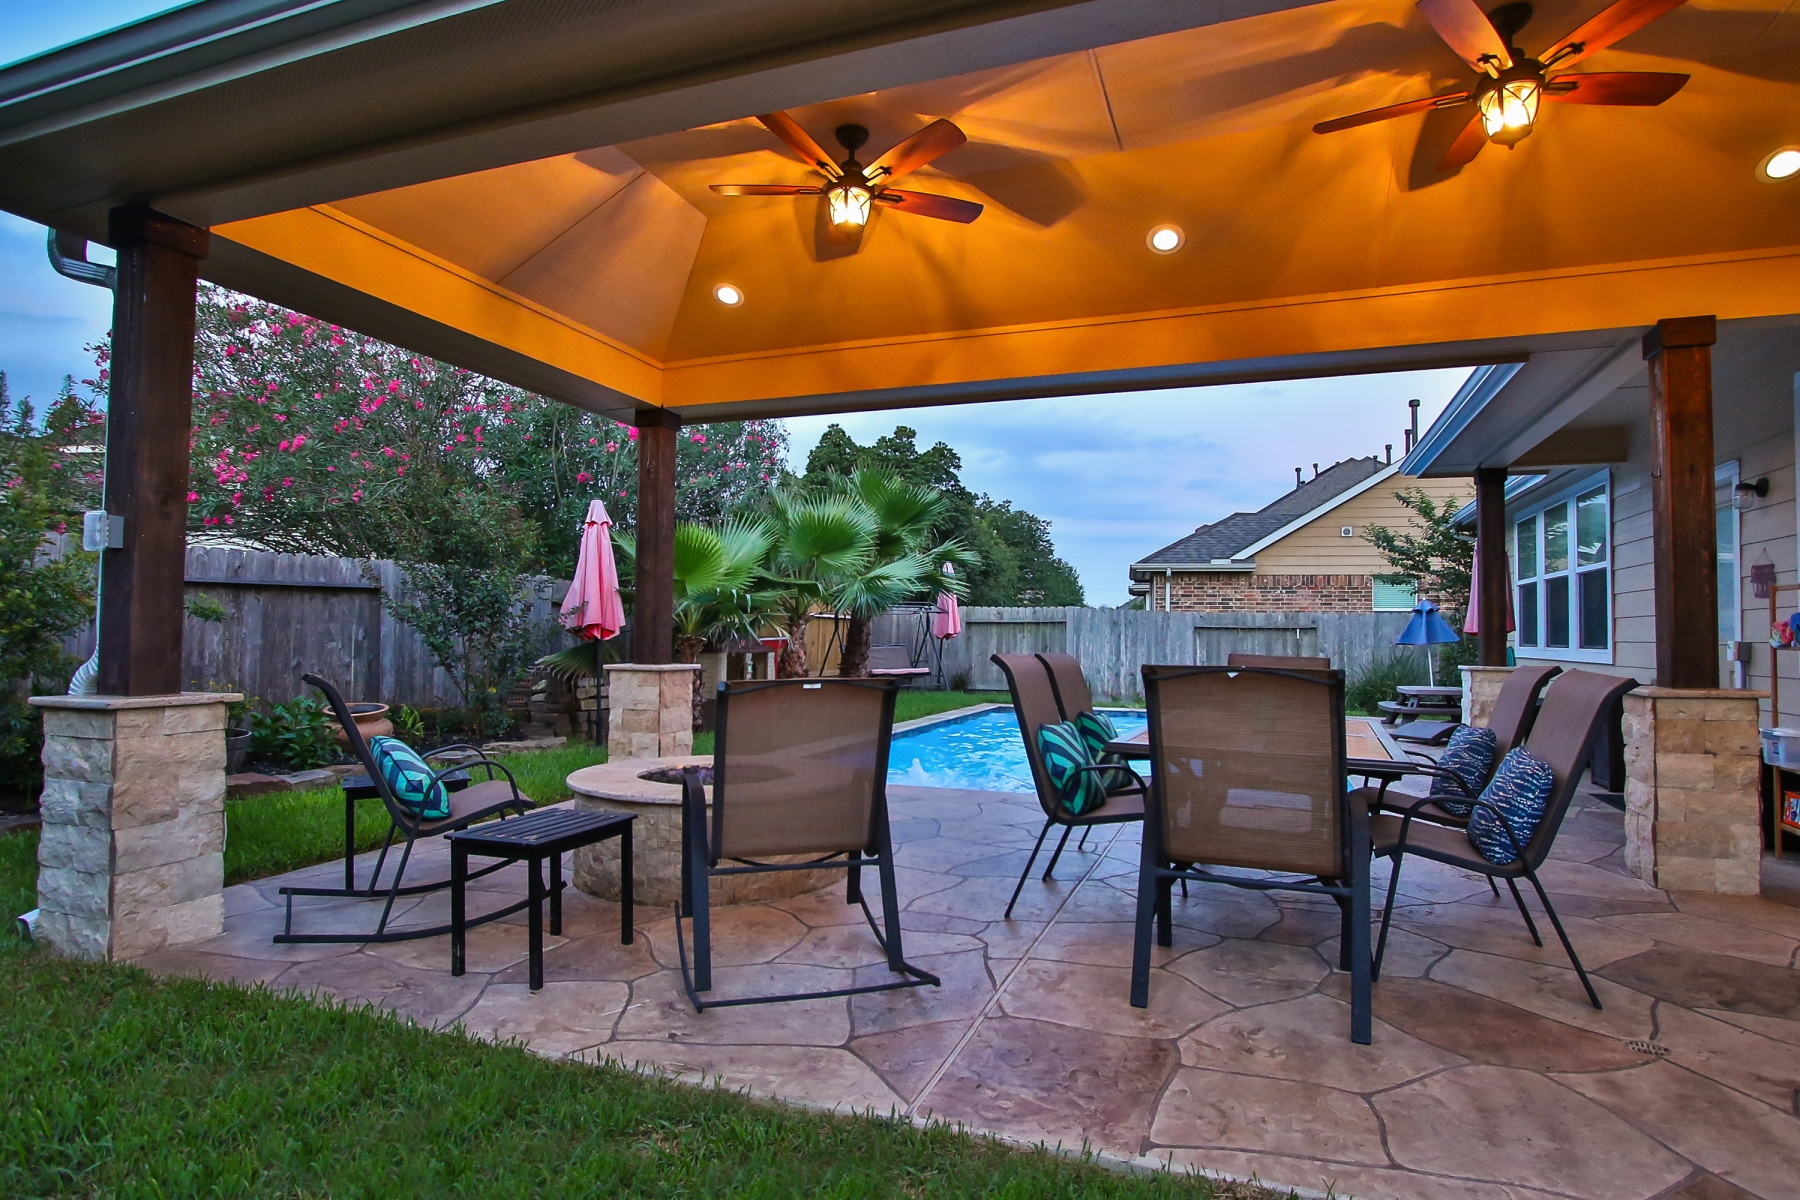 Covered Patio with Dining Area & Fire Pit